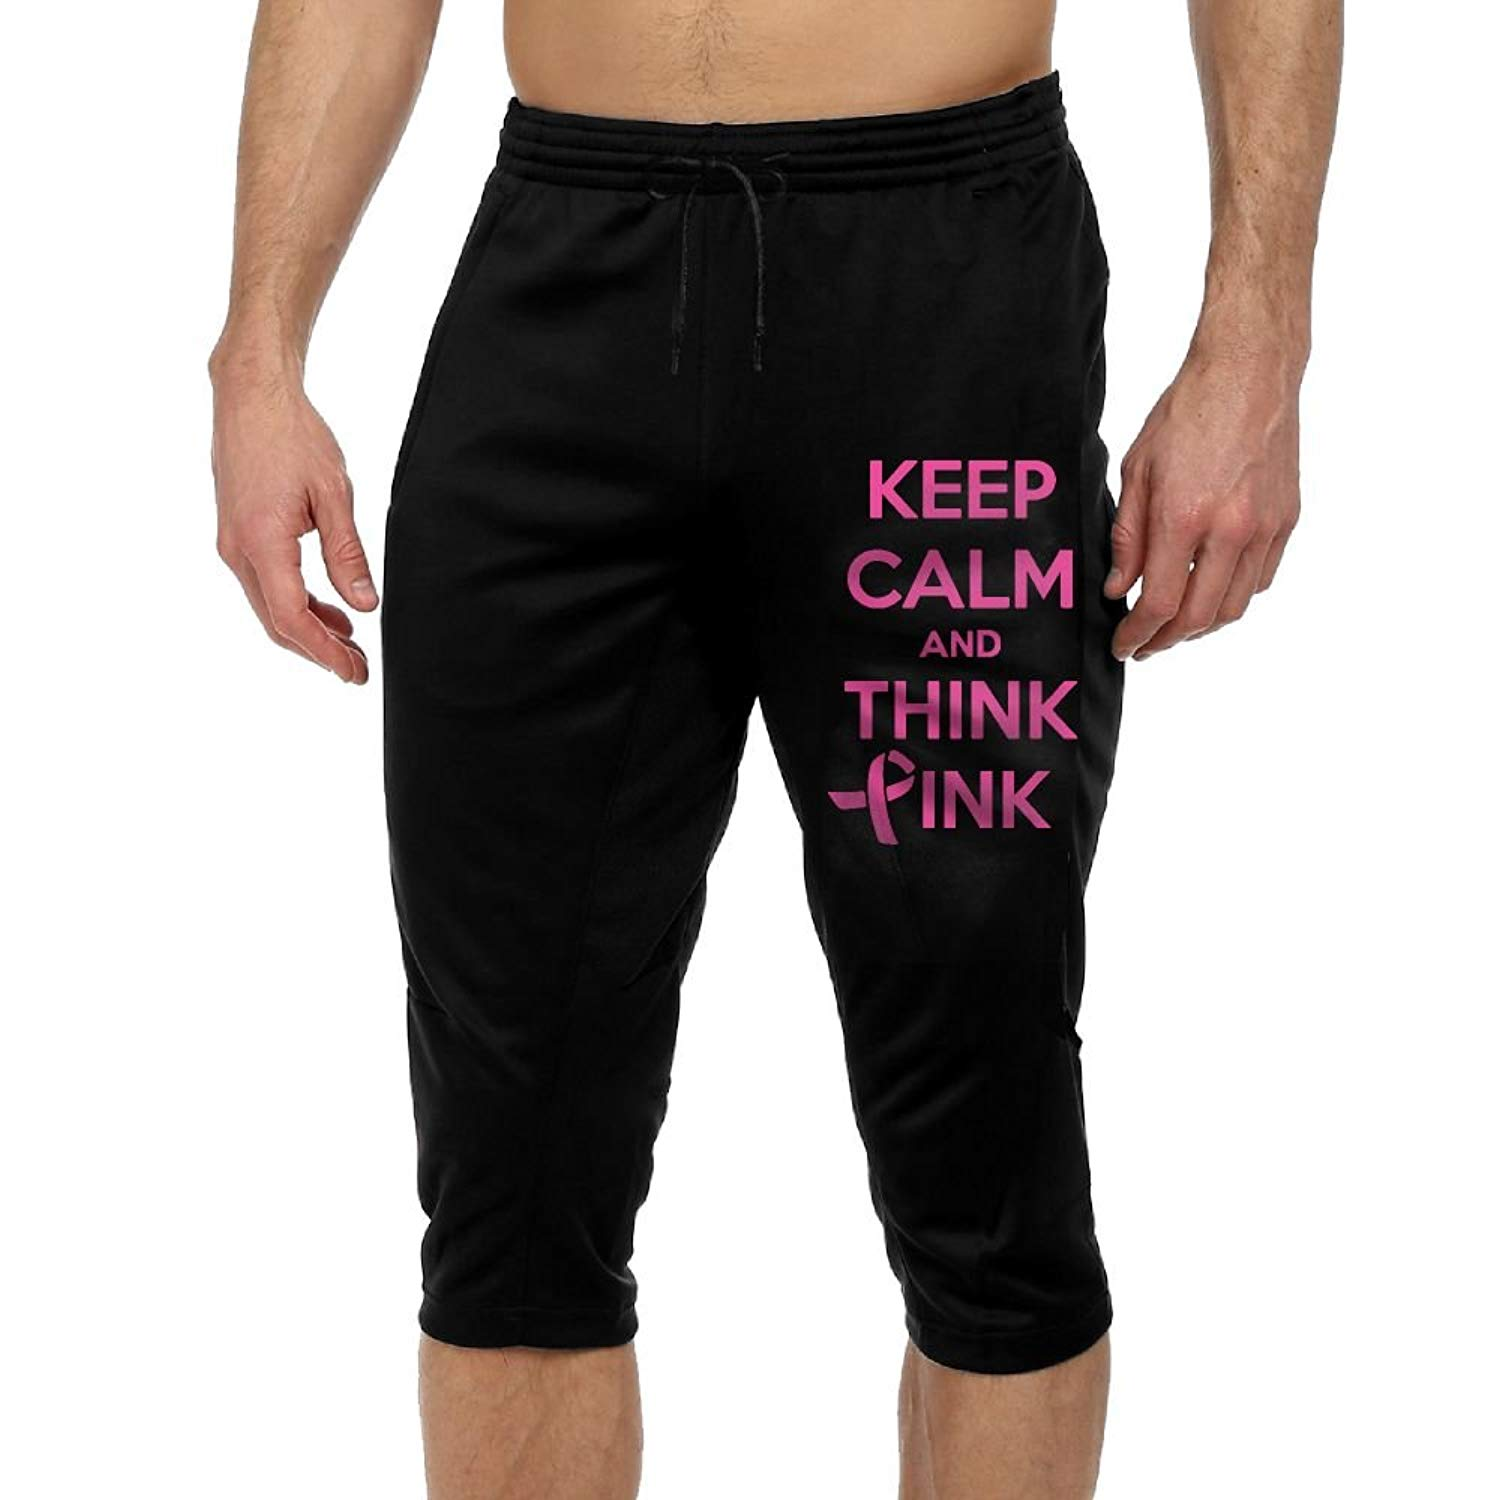 8a061afd9fa55 Cheap Sweat Pants Pink, find Sweat Pants Pink deals on line at ...